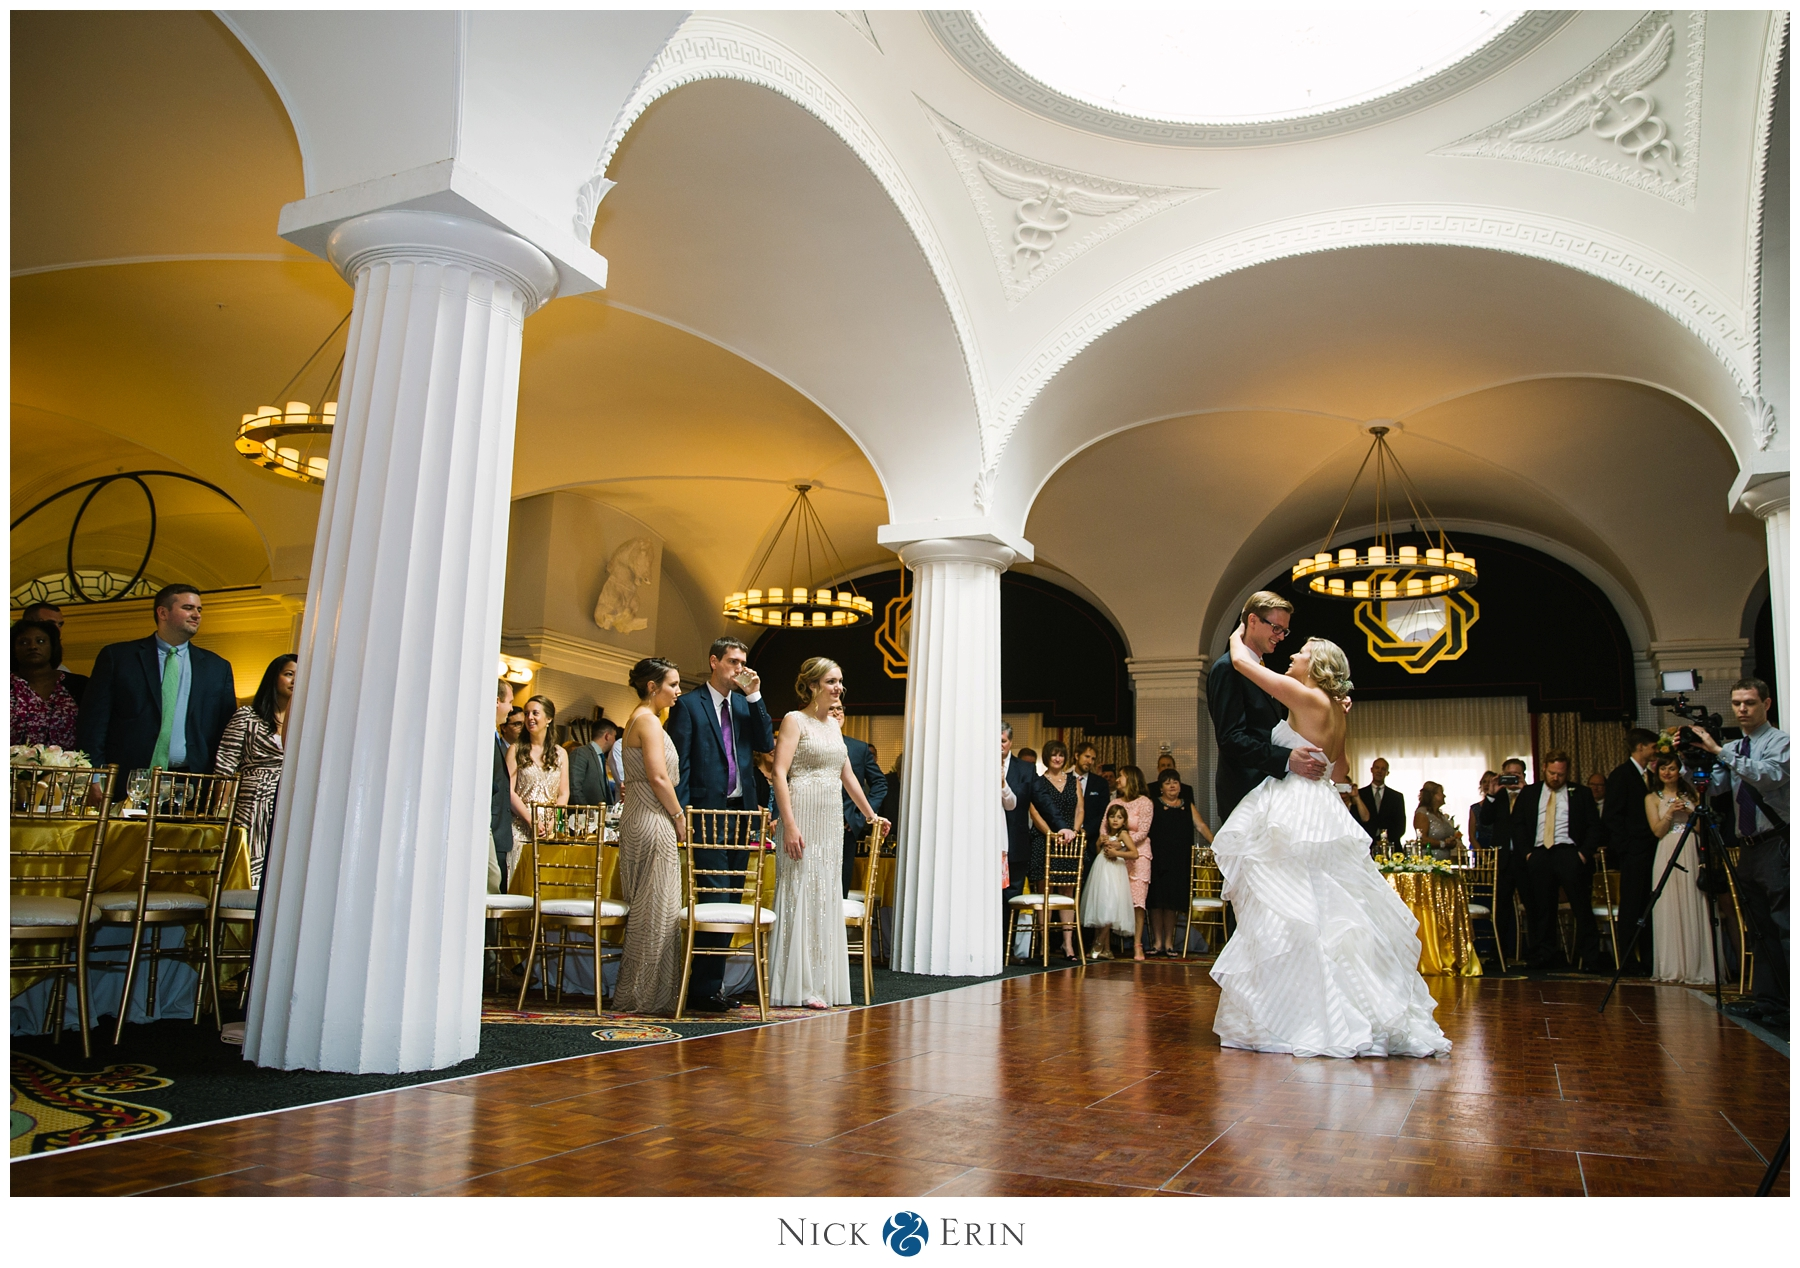 Donner_Photography_Washington DC Wedding_Rachel & Taylor_0053